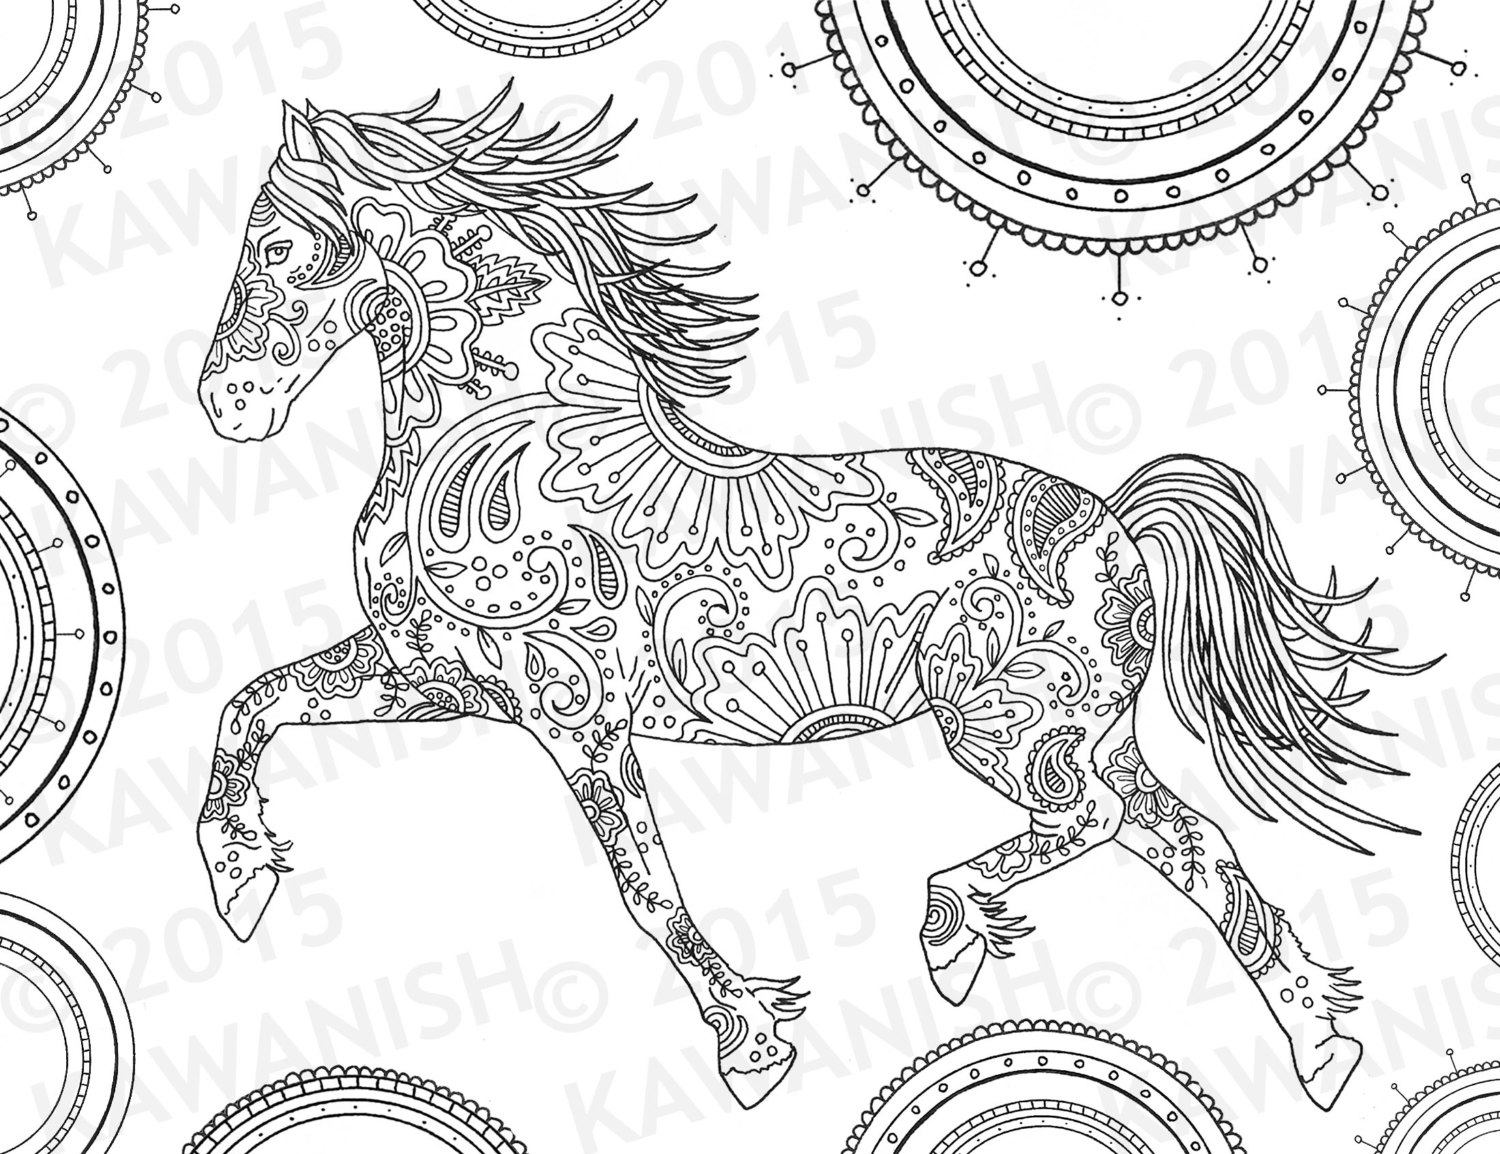 horse zentangle coloring pages zentangle of my horse cooper horse coloring pages horse zentangle pages coloring